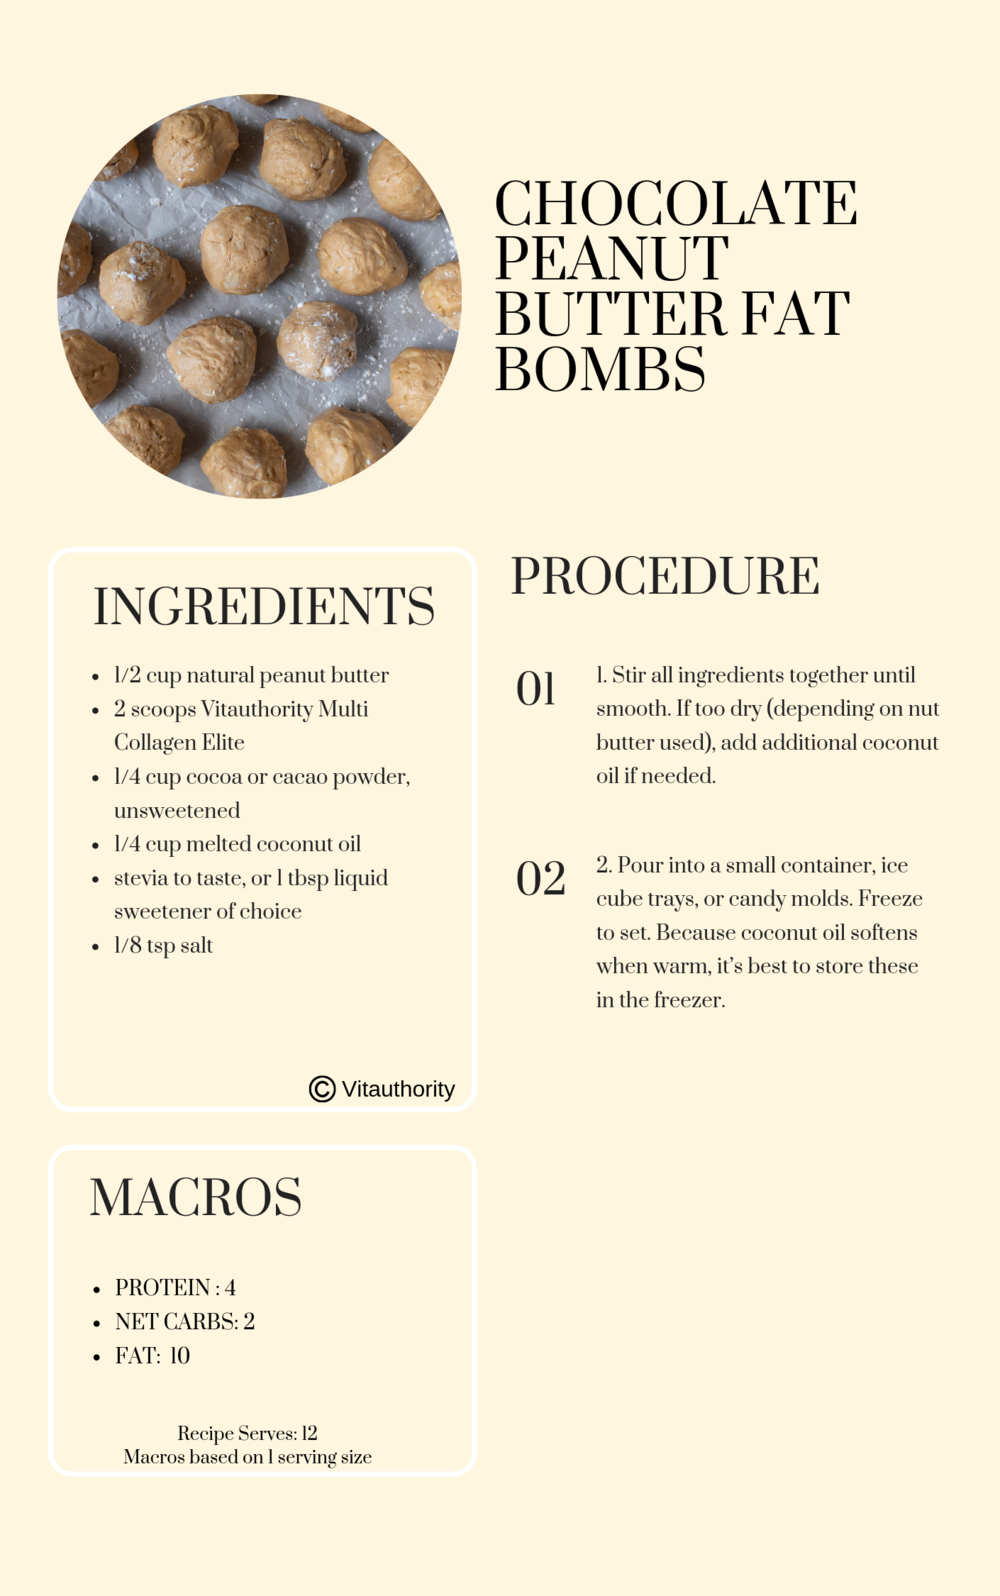 """Perfect Low Carb Day Snack! - Enjoy one of my favorite Vitauthority Inspired Low-Carb snacks. Quick, healthy, & simple!They are packed full of collagen peptides as well to give your hair, skin, & nails the boost you want!Also, giving you a glimpse into my new """"ARFiT Shred E-Cookbook"""" now available! Go grab yours now!And, p.s…make sure to check out the amazing collagen peptides from Vitauthority & snag a discount using my coupon code """"ALEXA10"""